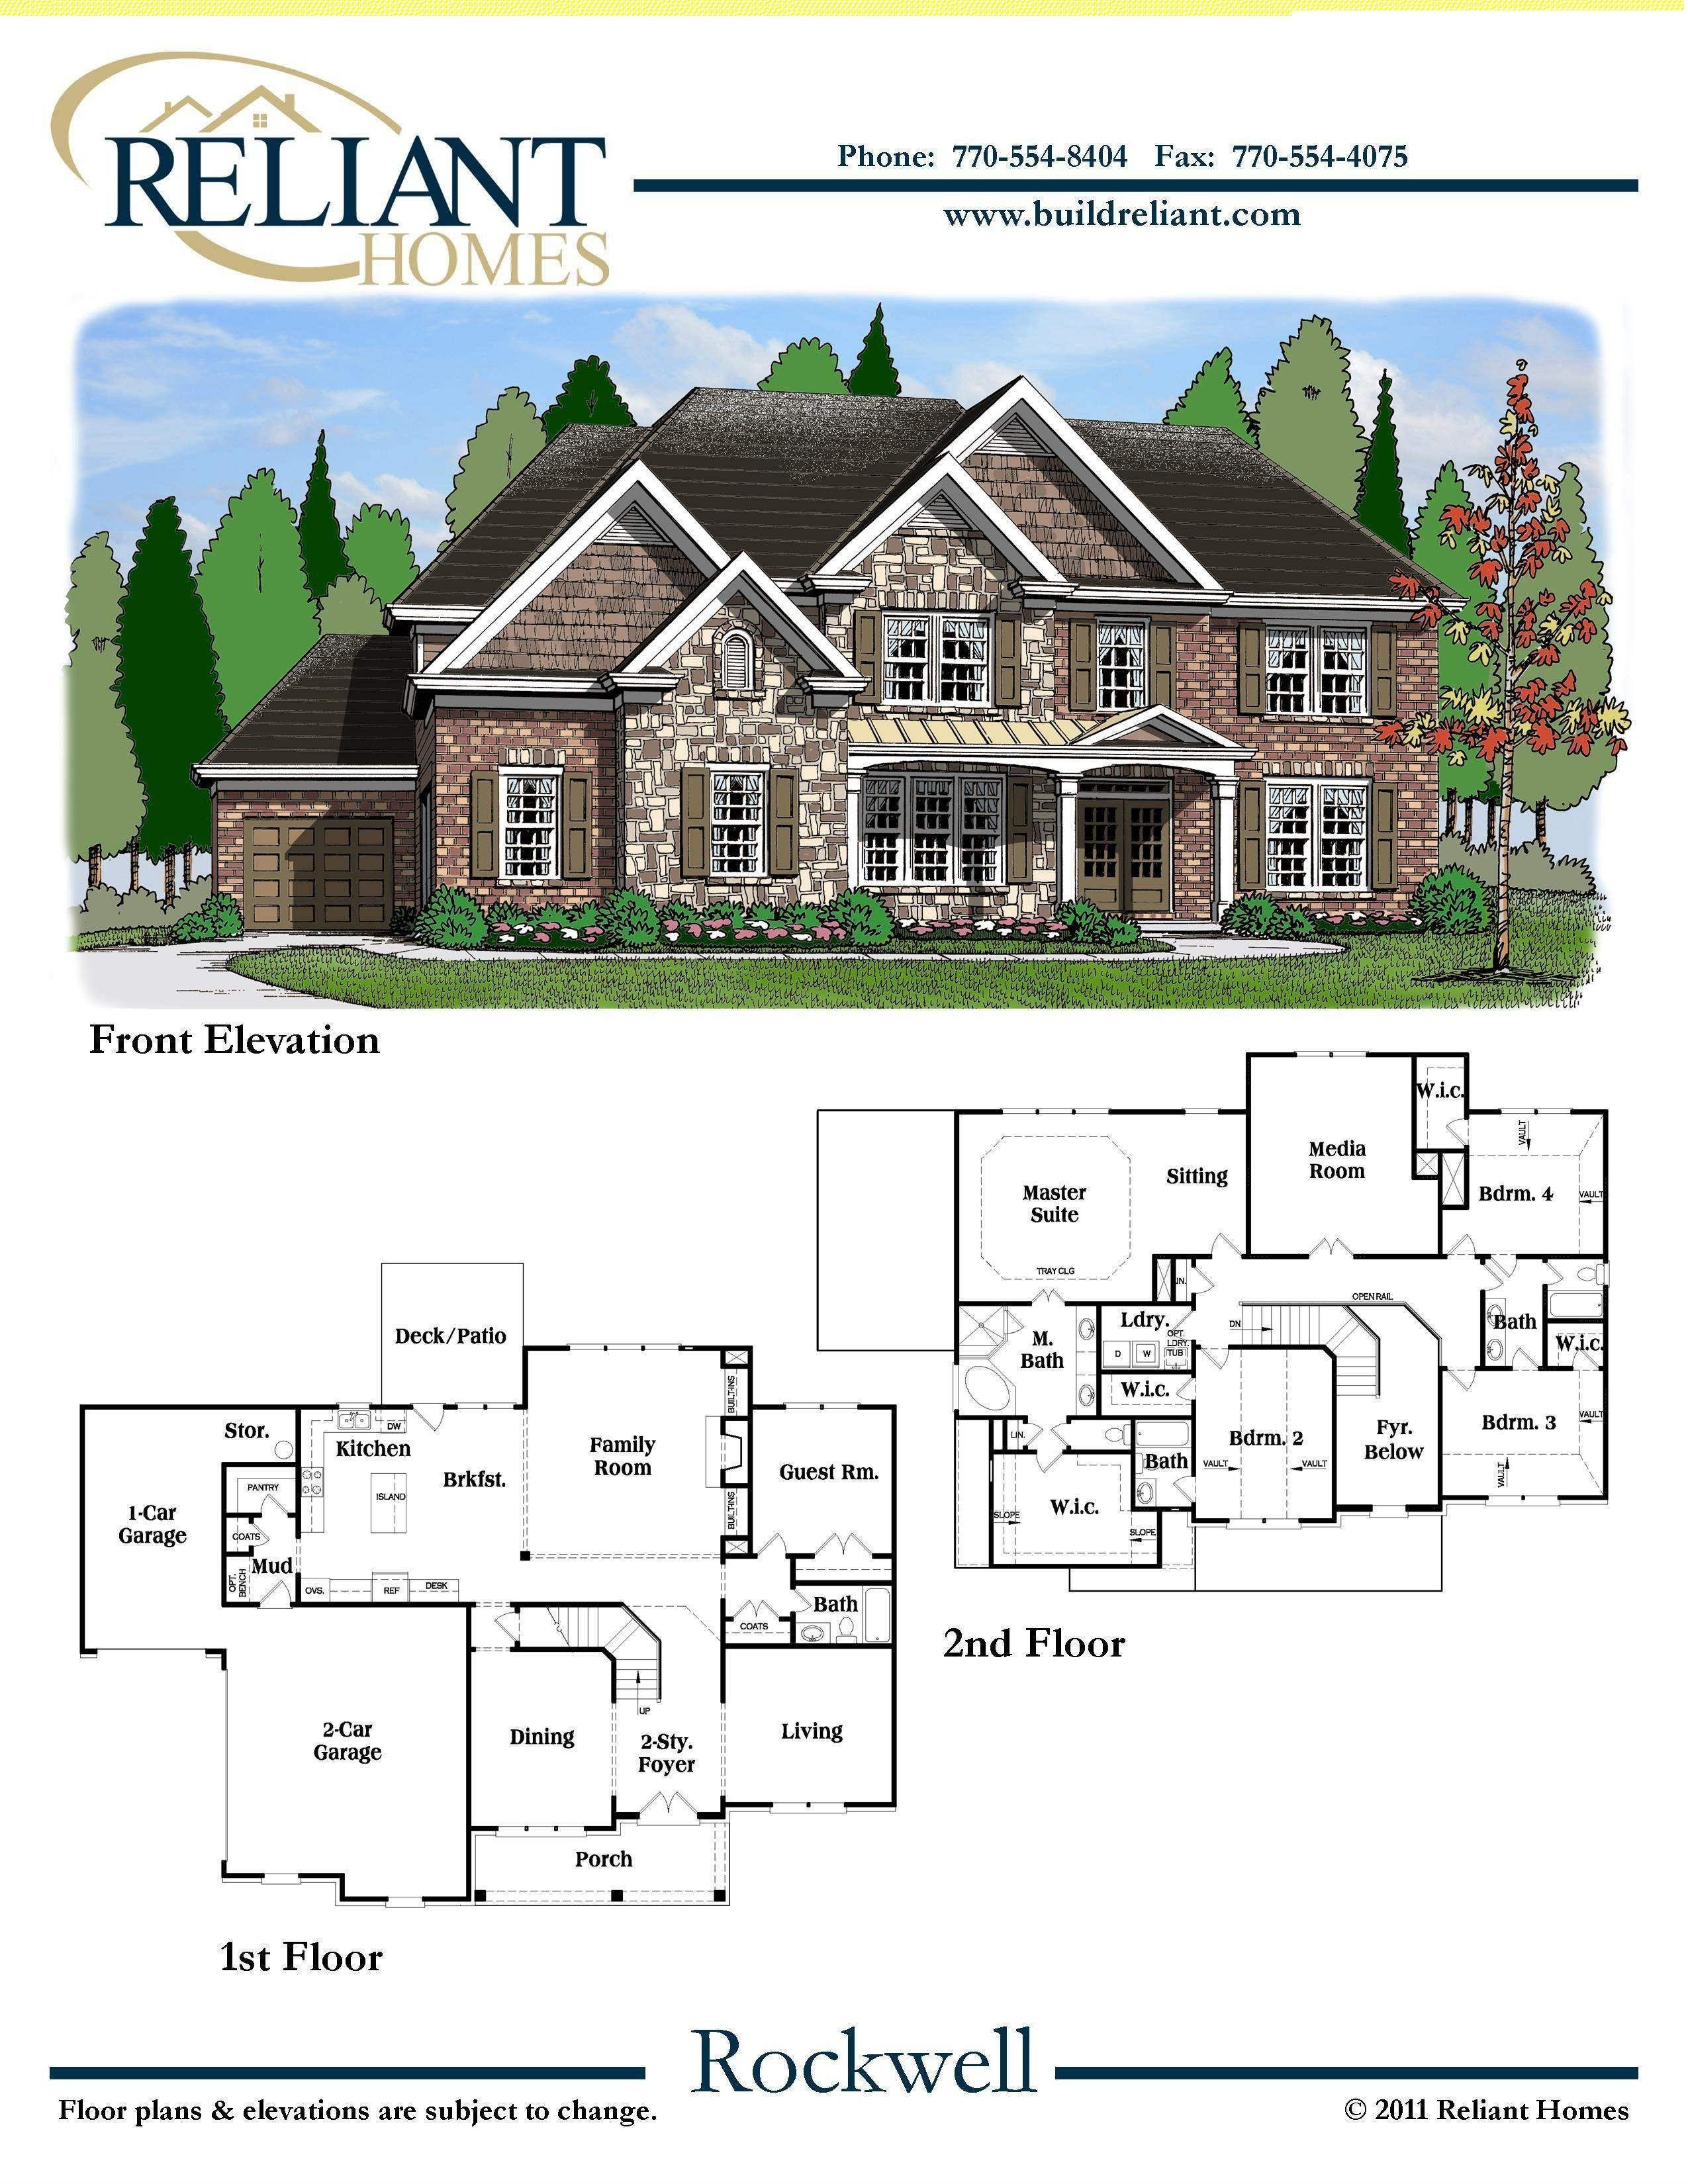 Home Plans for Sale Best Of Reliant Homes the Rockwell Plan Floor Plans